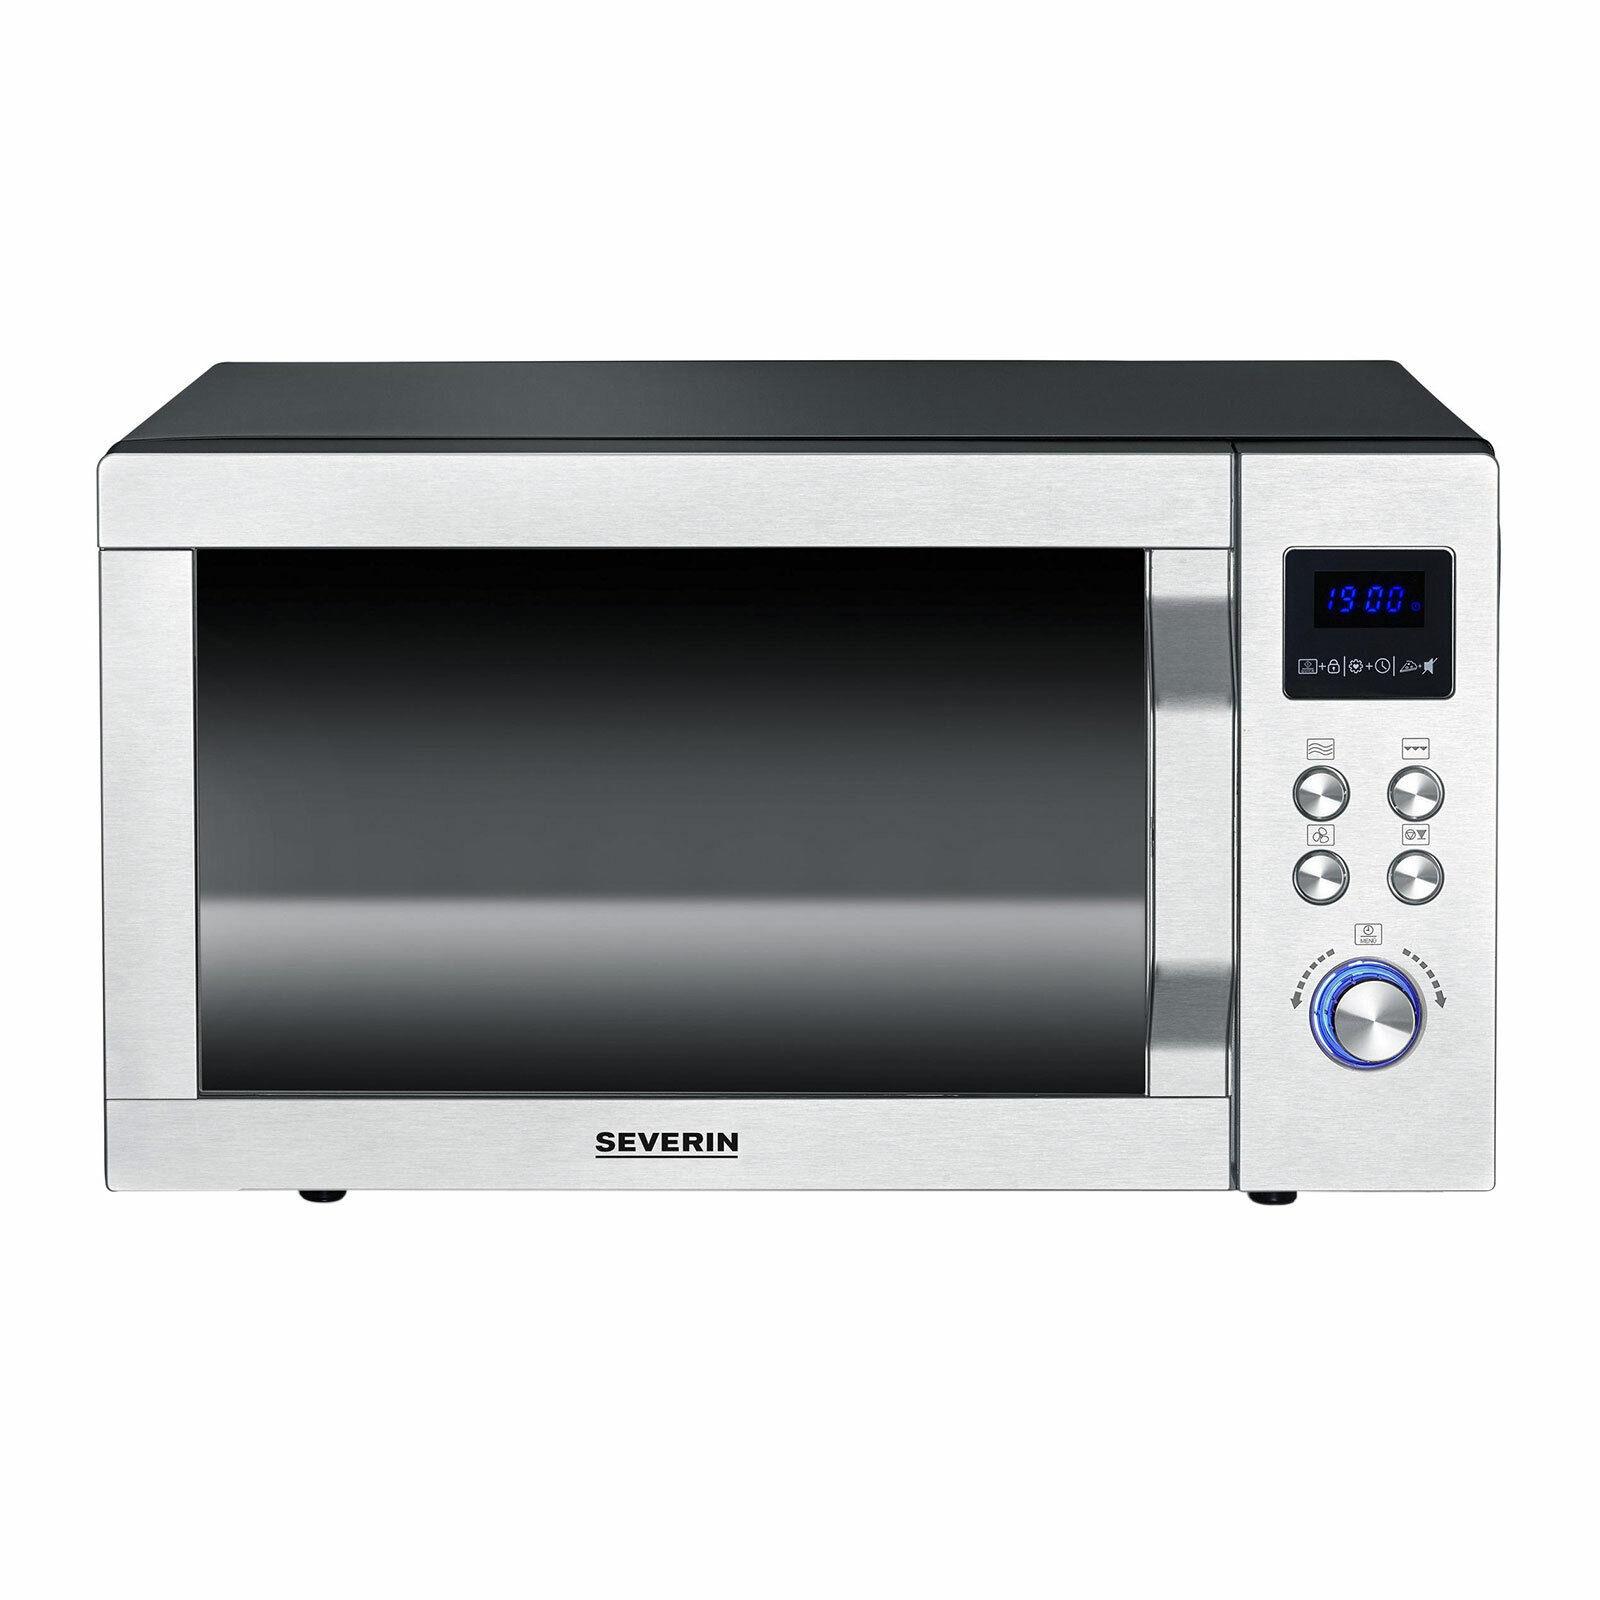 Severin MW 7759 Mikrowelle 4 in 1 Doppelgrill Pizza-Express Funktion Edelstahl